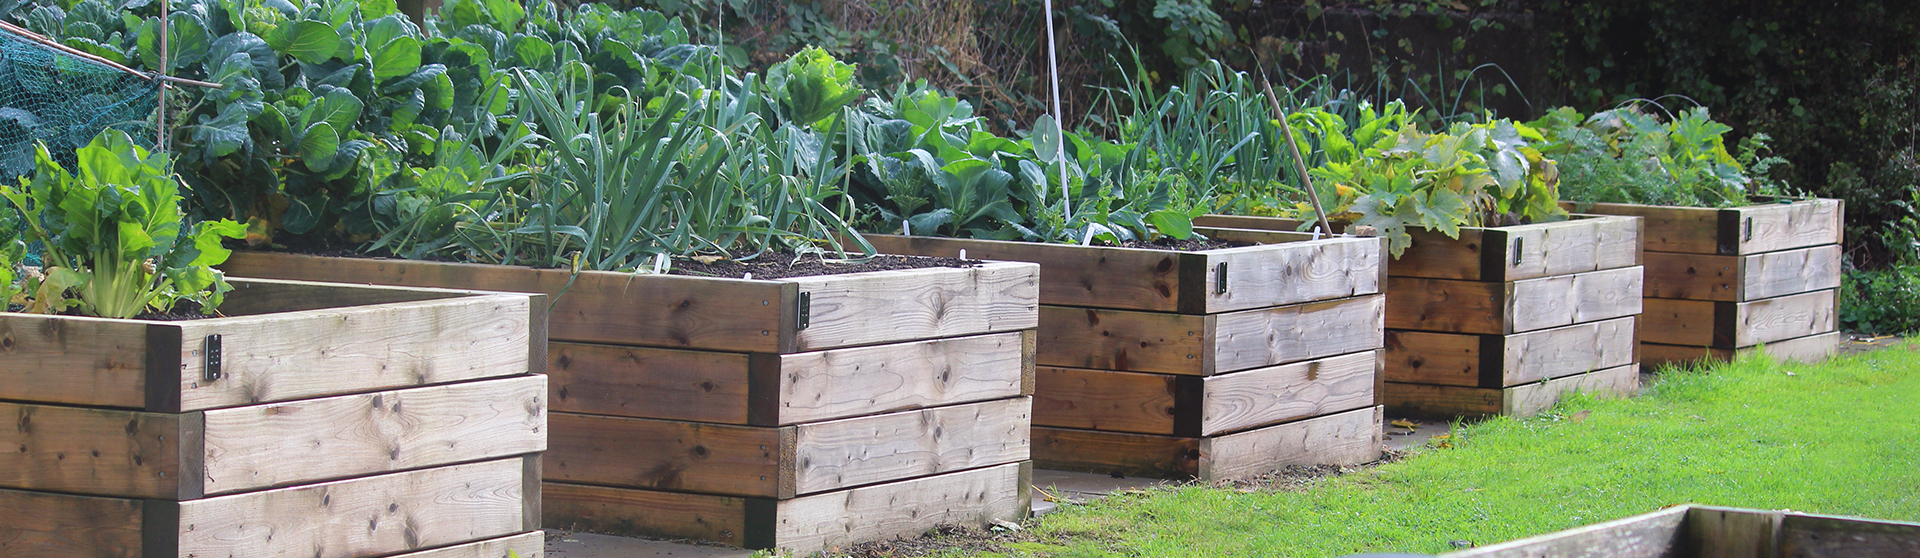 Photo showing an allotment vegetable garden with a row of homemade, wooden raised beds many with thick, heavy duty, treated tanalised timber. The raised beds are being used to grow salad vegetables, courgettes, herbs and potatoes, being easy to maintain without the need to bend over, and therefore particularly suitable for disable gardeners and seniors. Containers such as these simple raised beds can be attractive, making a vegetable garden organised, neat and tidy. Also in the picture is a green plastic water butt and wooden compost heap.